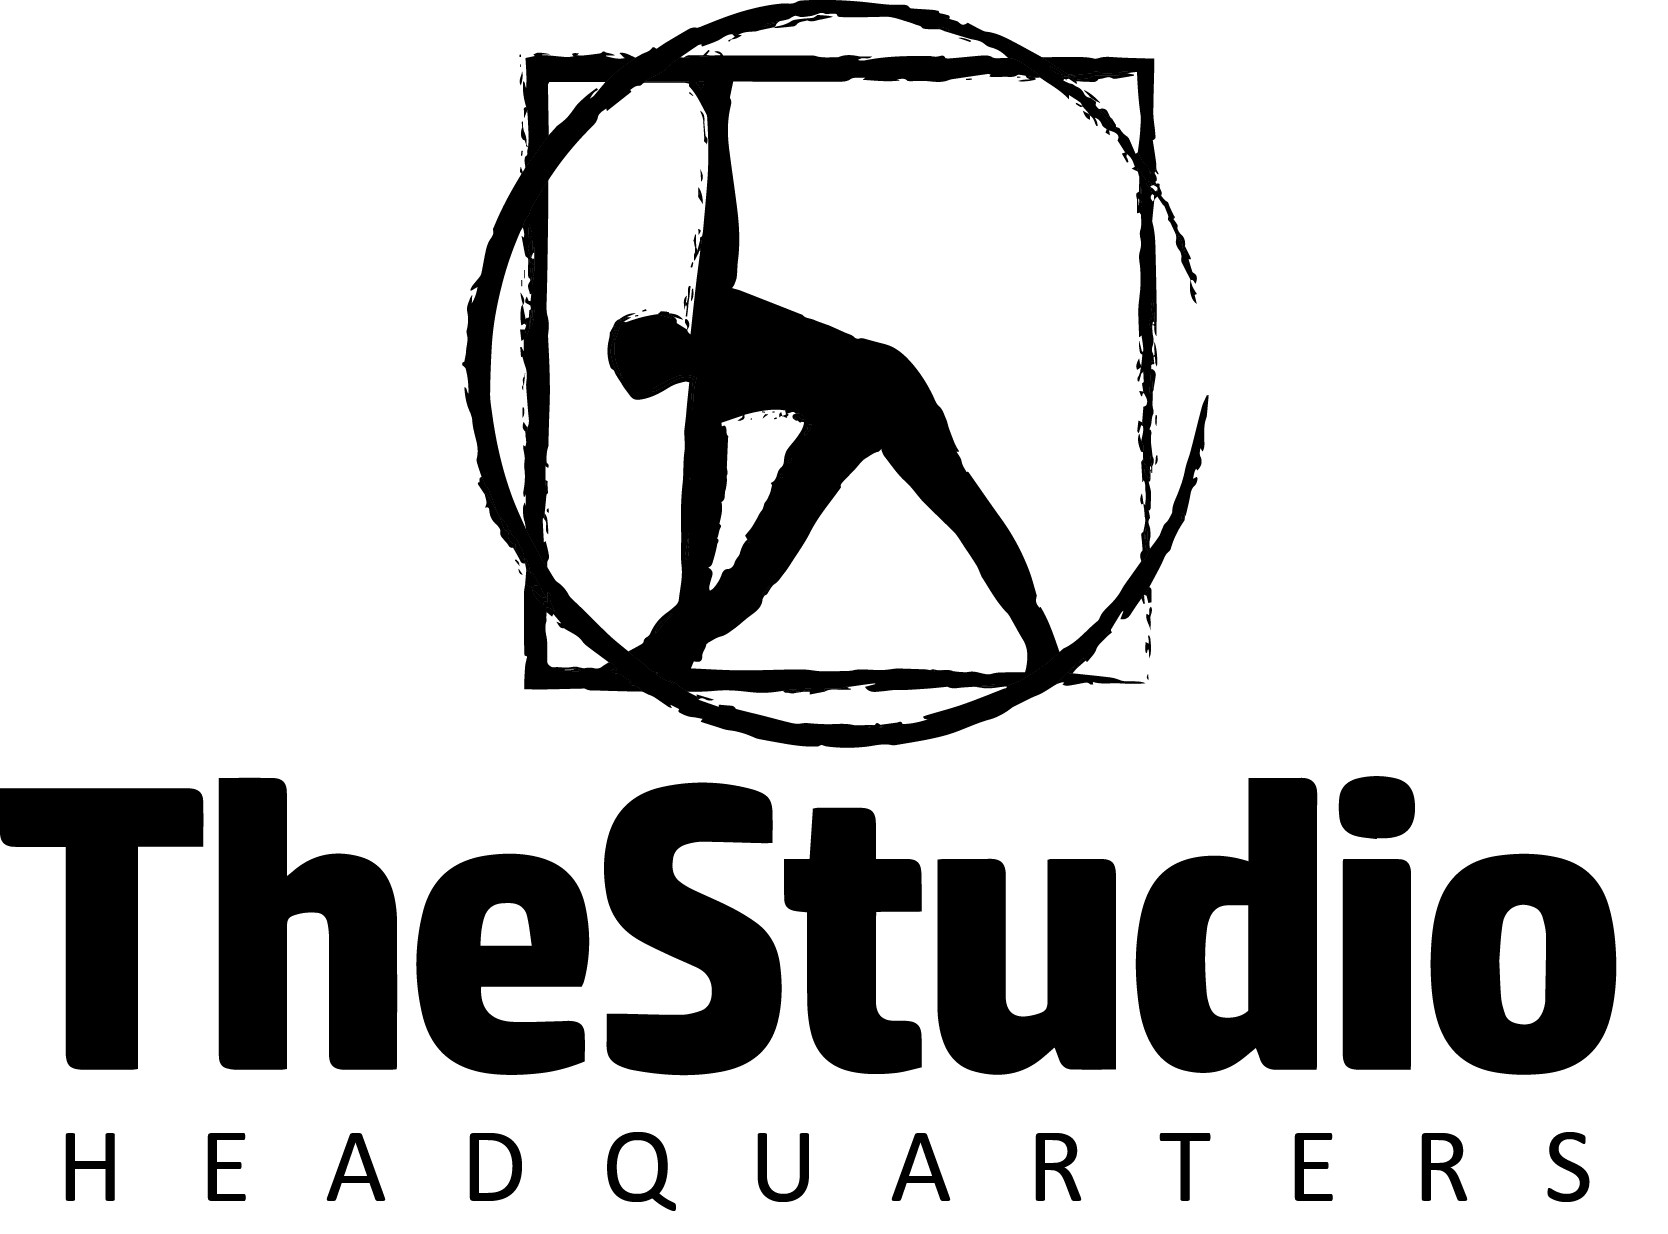 TheStudio_HQ_Black.png